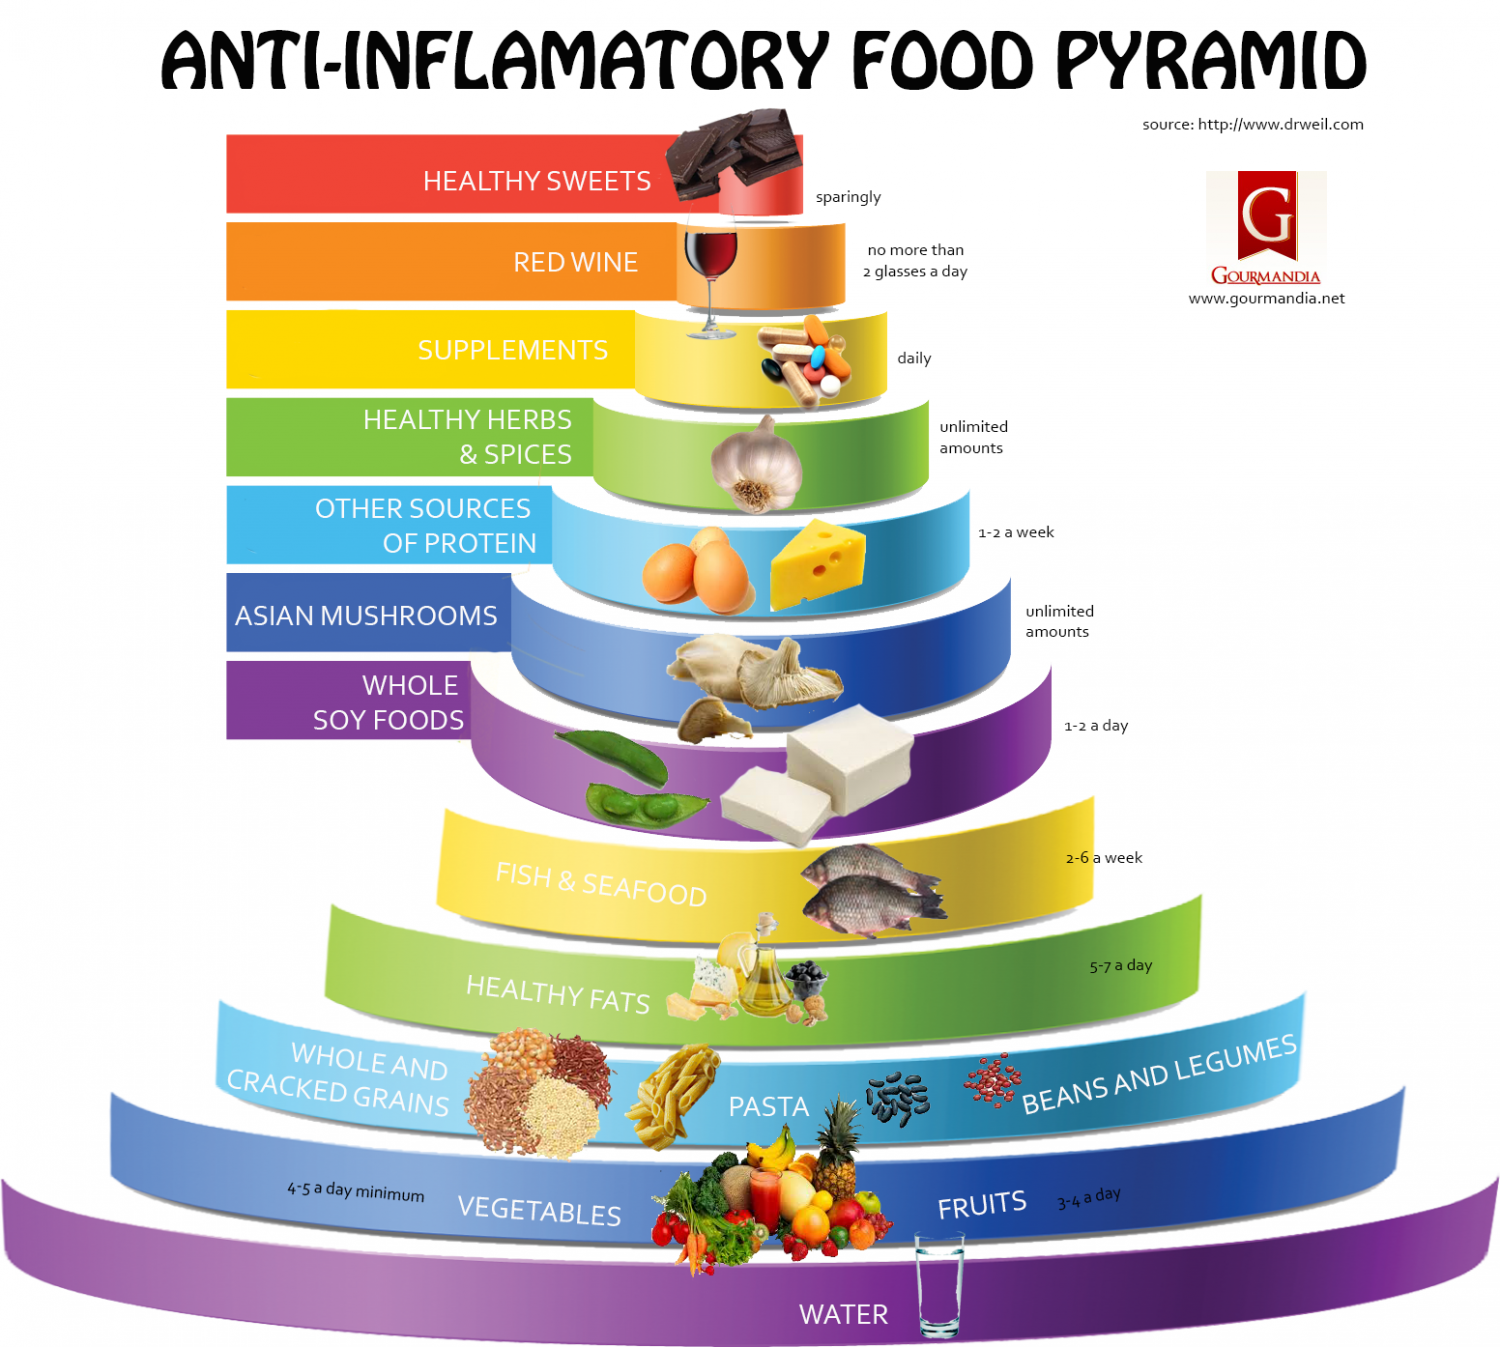 ANTI-INFLAMMATORY FOOD PYRAMID Infographic